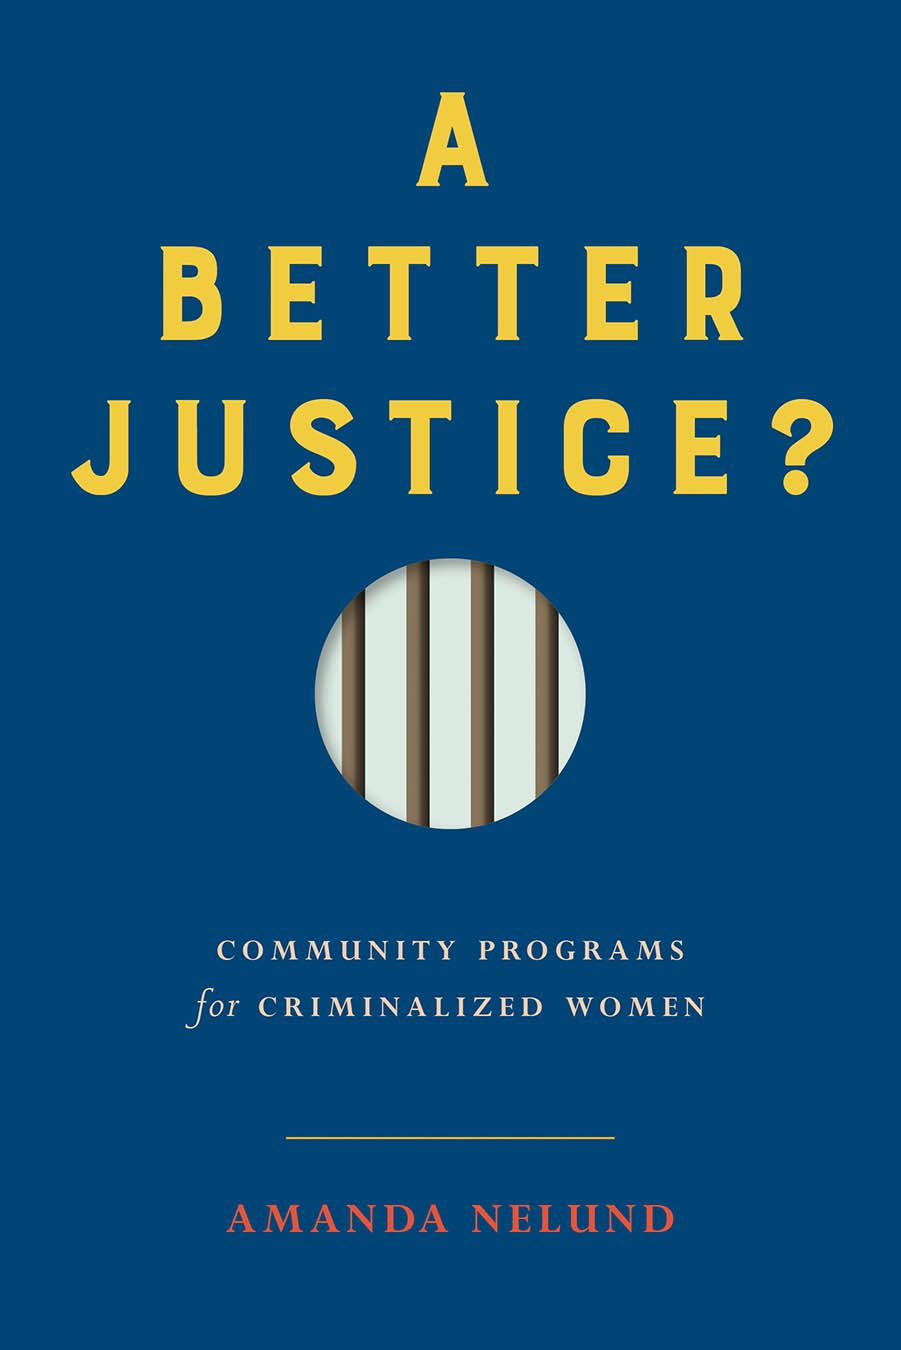 A Better Justice?: Community Programs for Criminalized Women